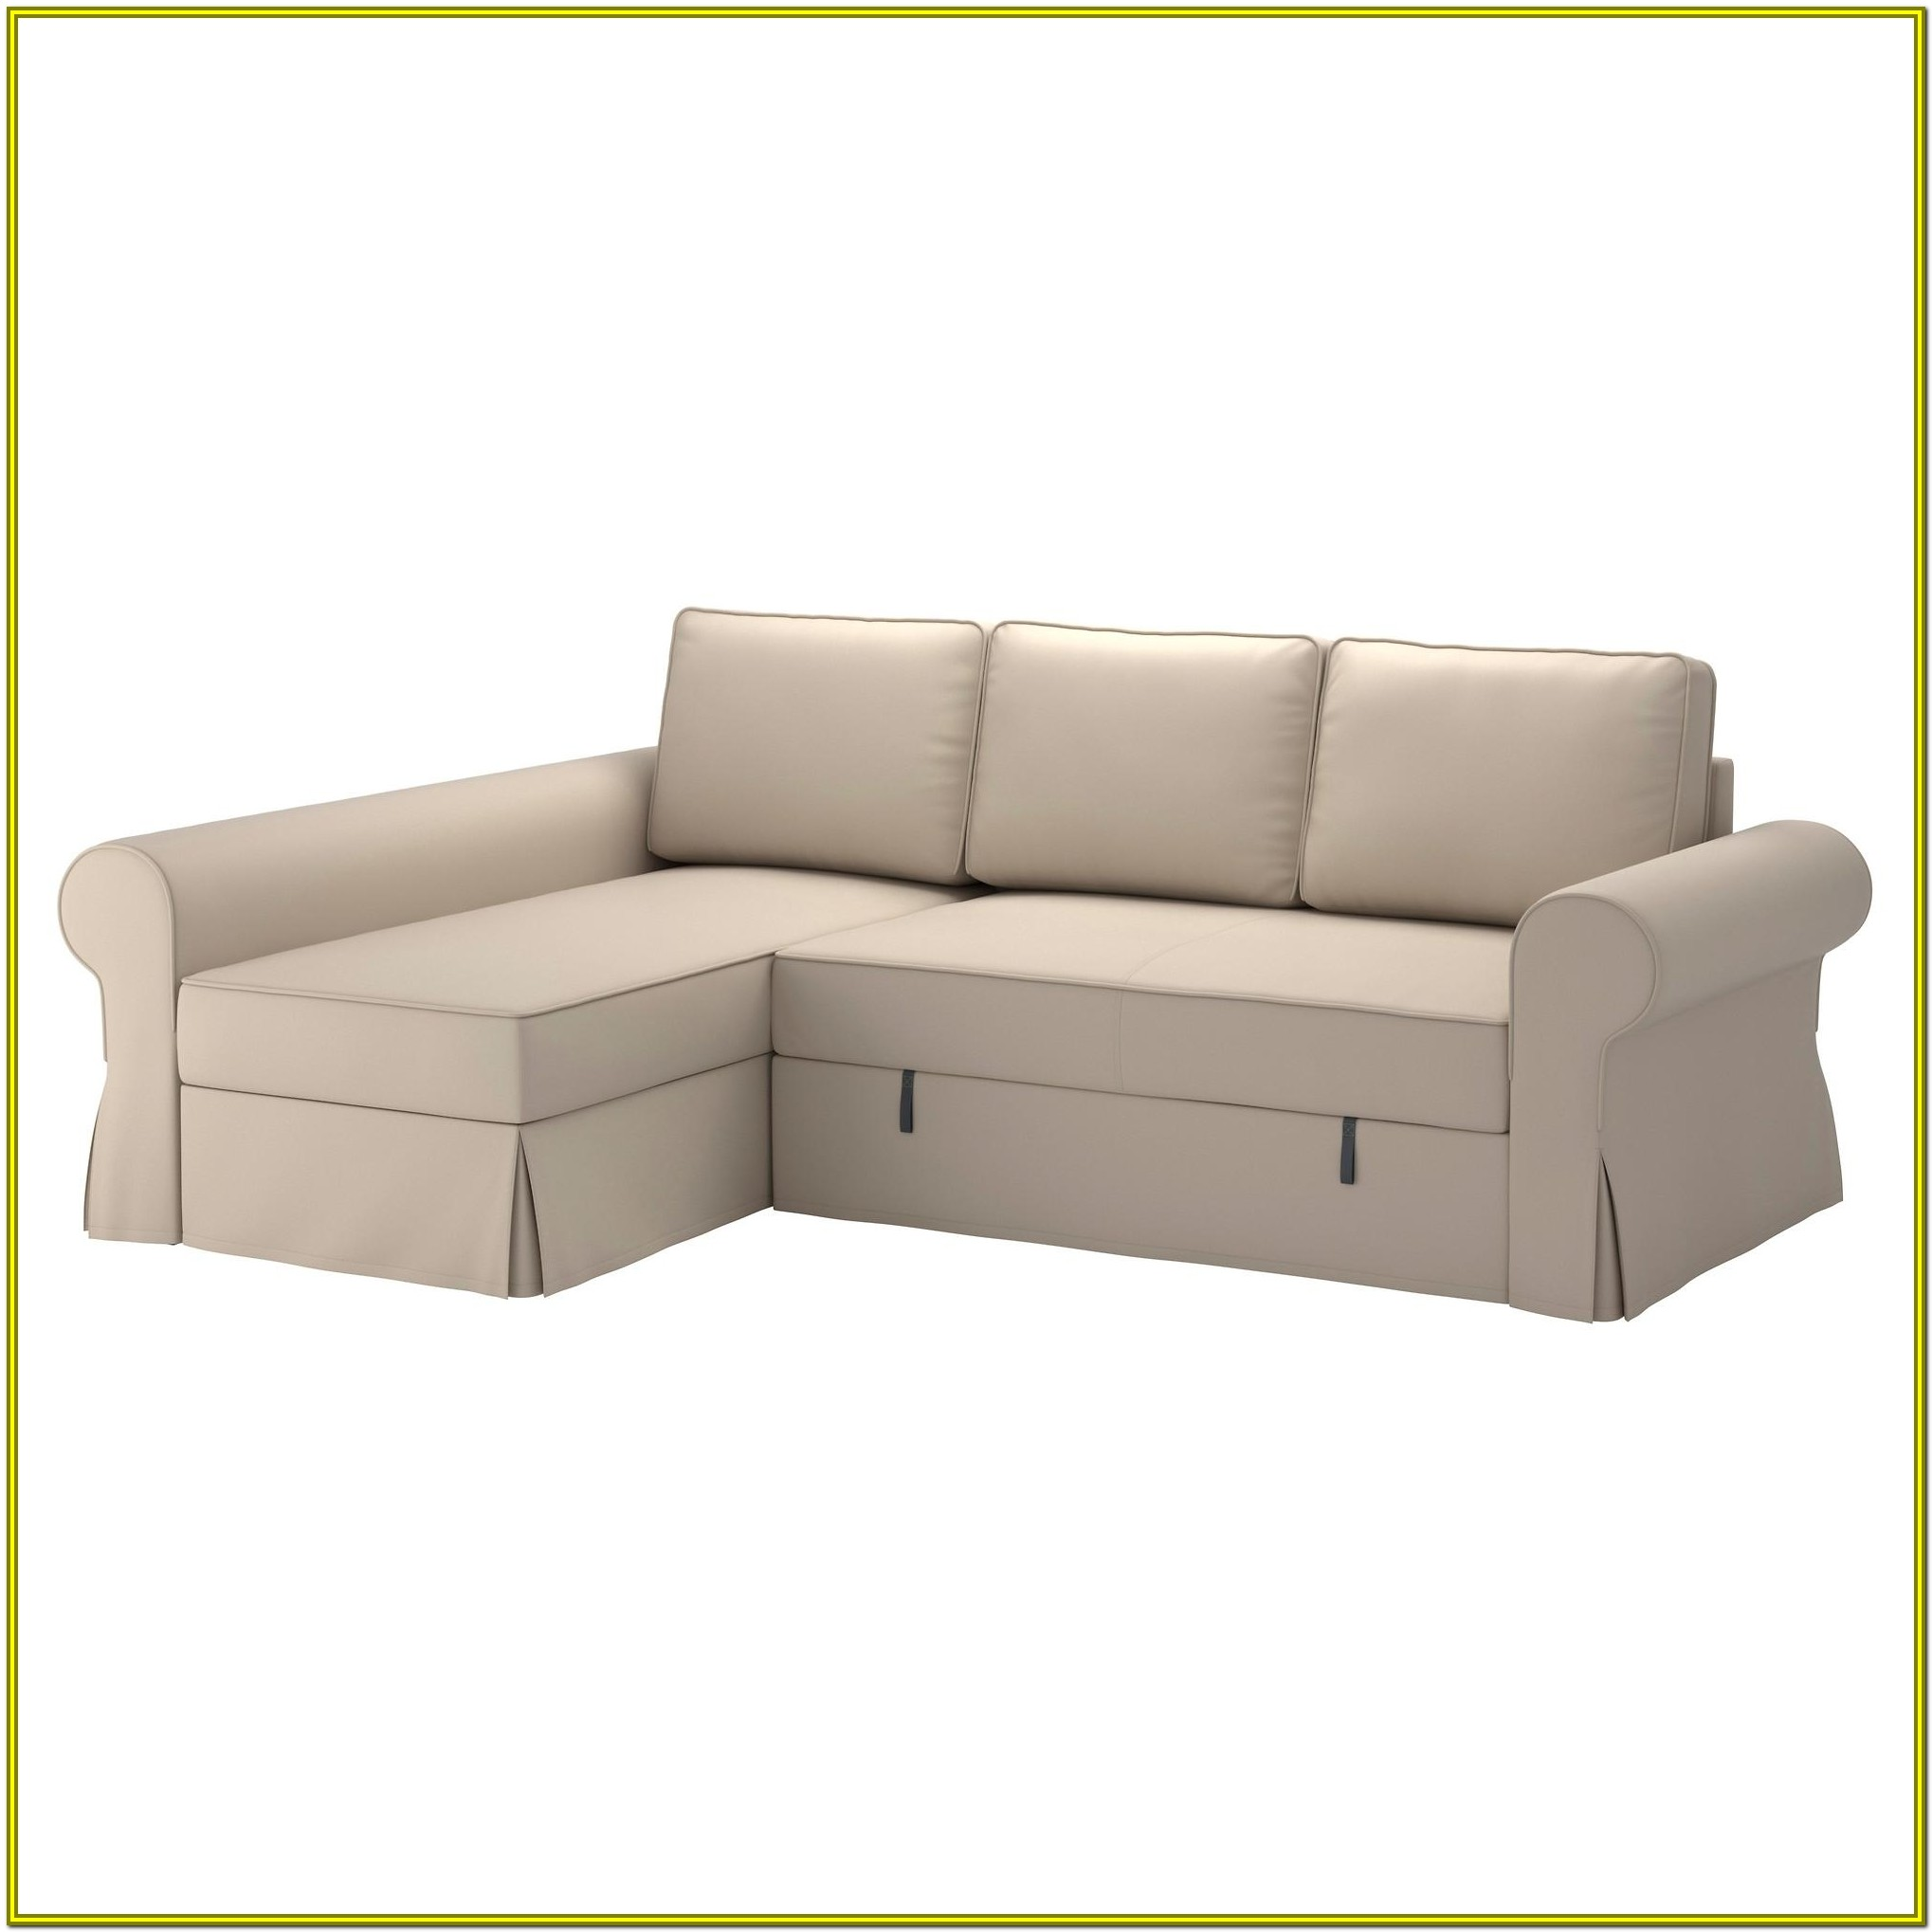 Sofa Bed With Chaise Longue Uk